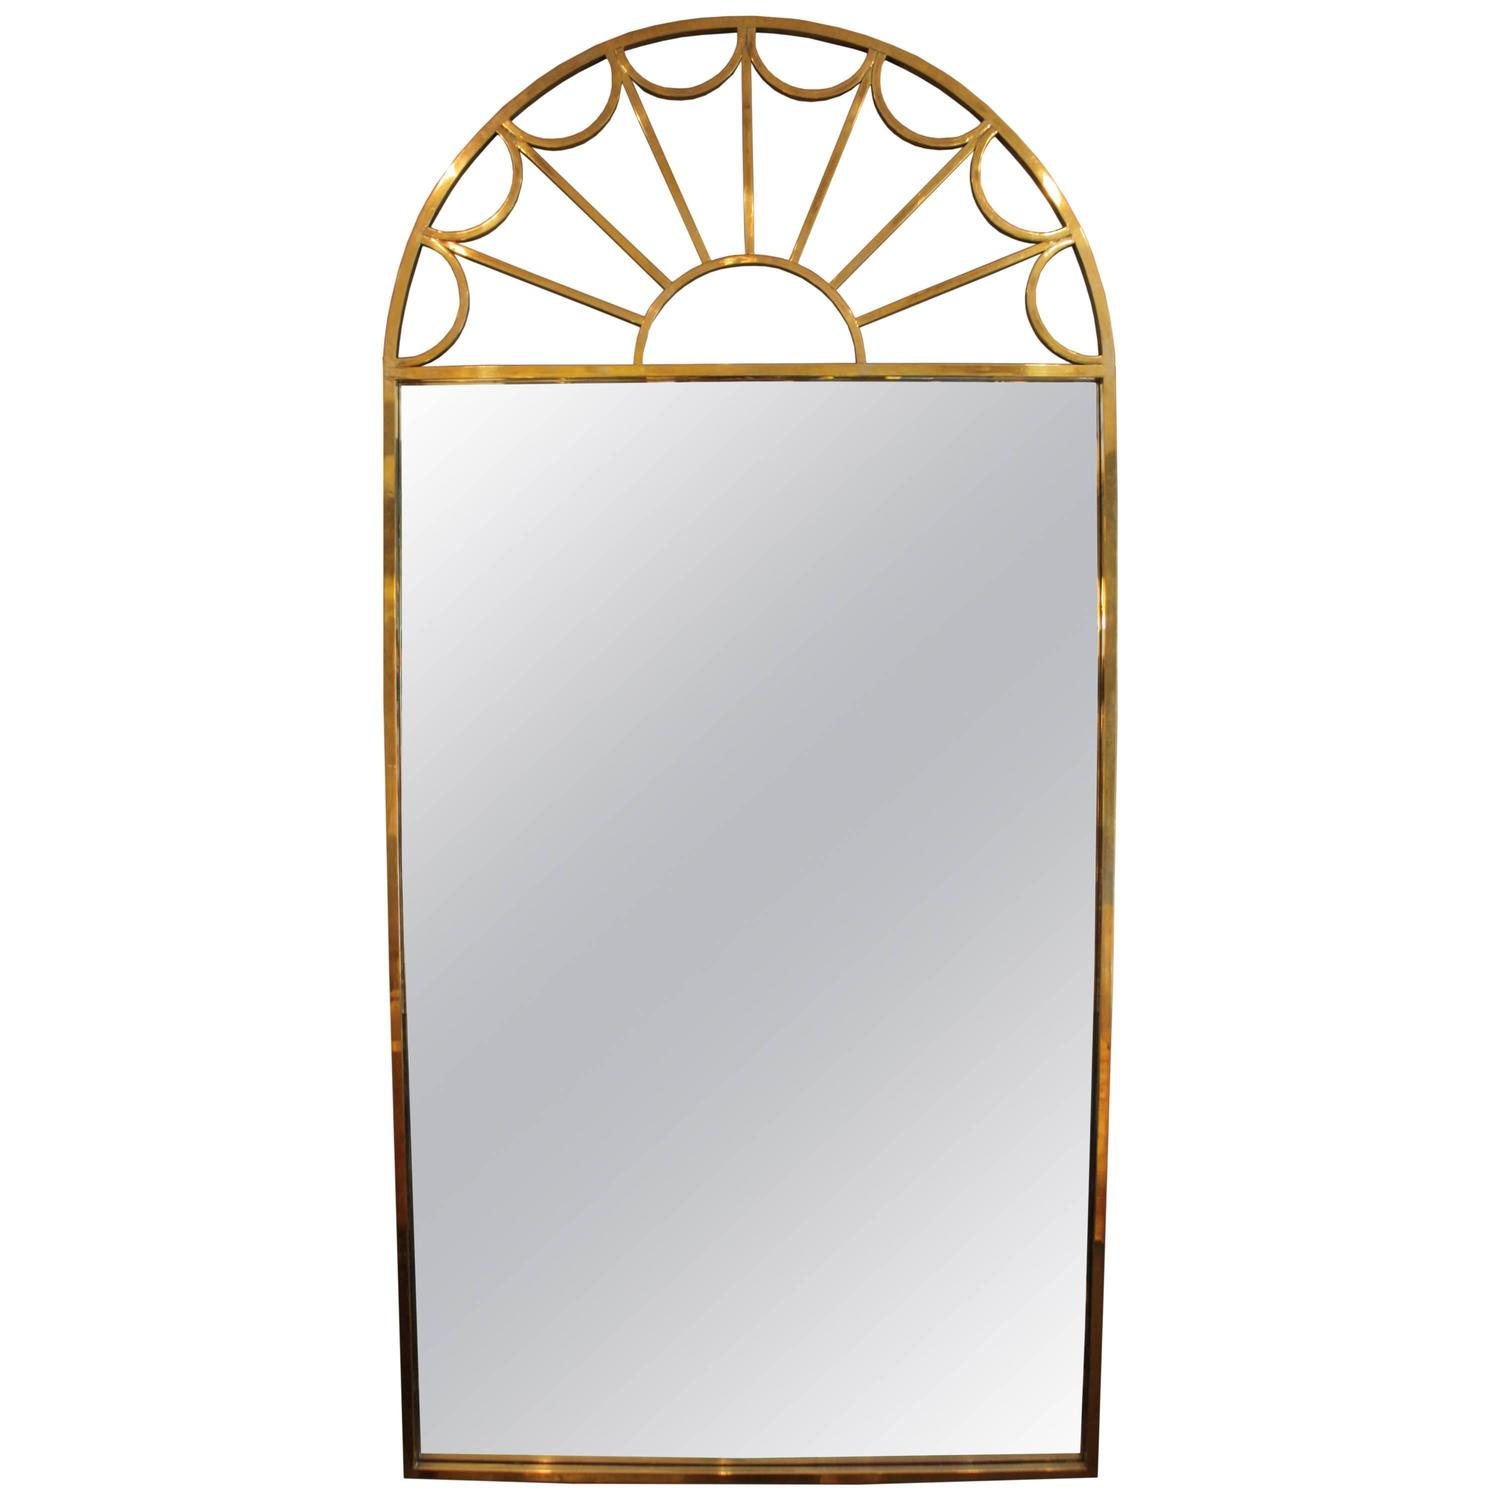 Arched gilt mirror at 1stdibs - Arched Gilt Mirror At 1stdibs 45